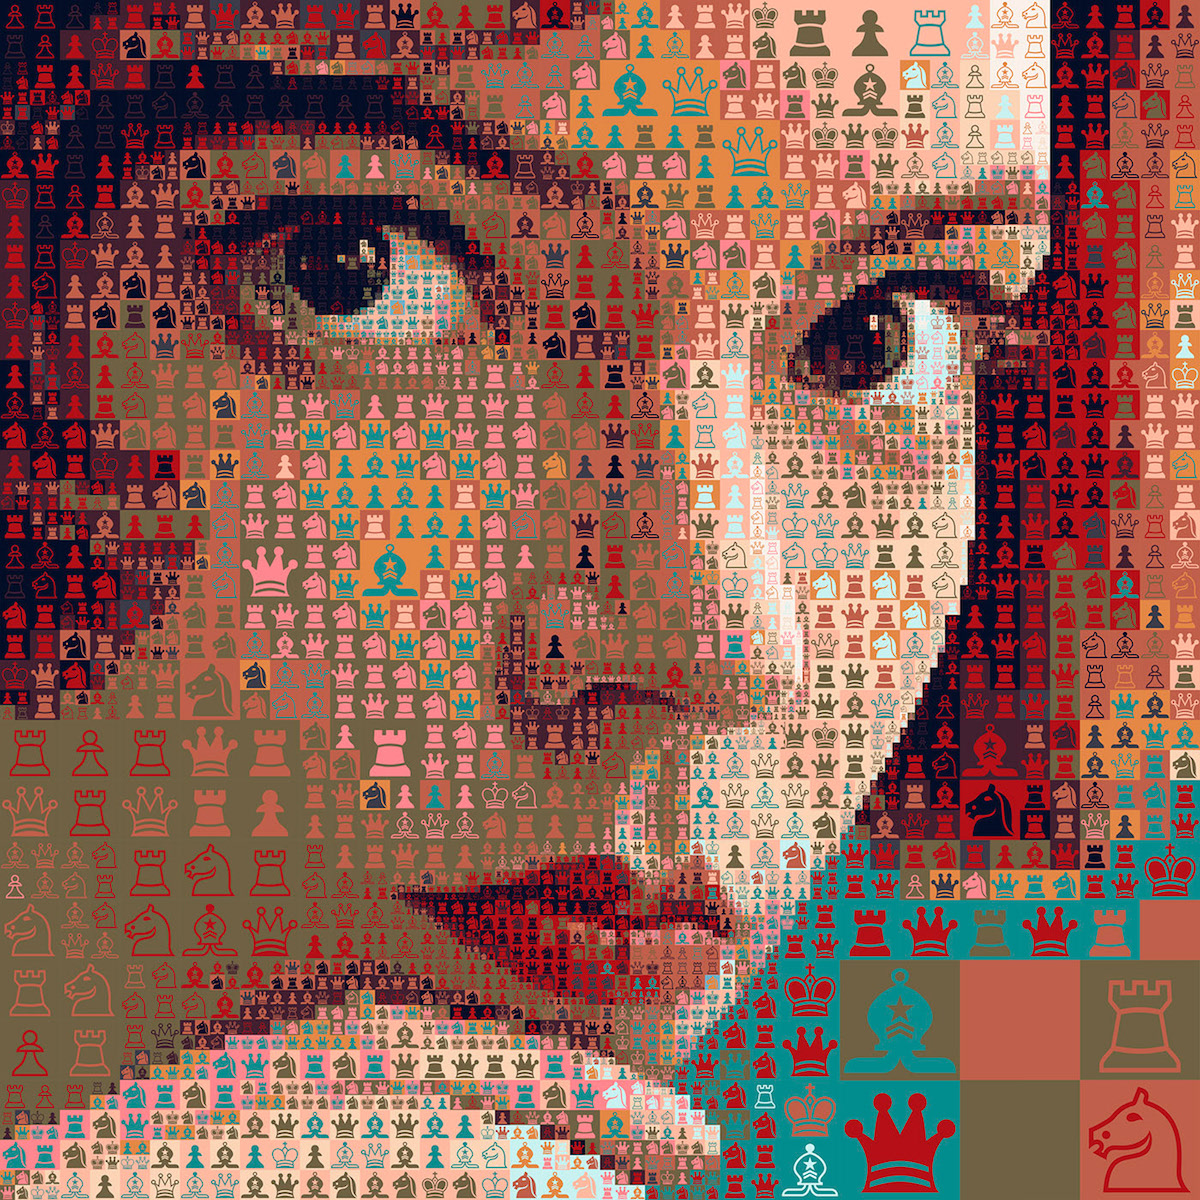 Mosaic Portrait of The Queen's Gambit by Charis Tsevis